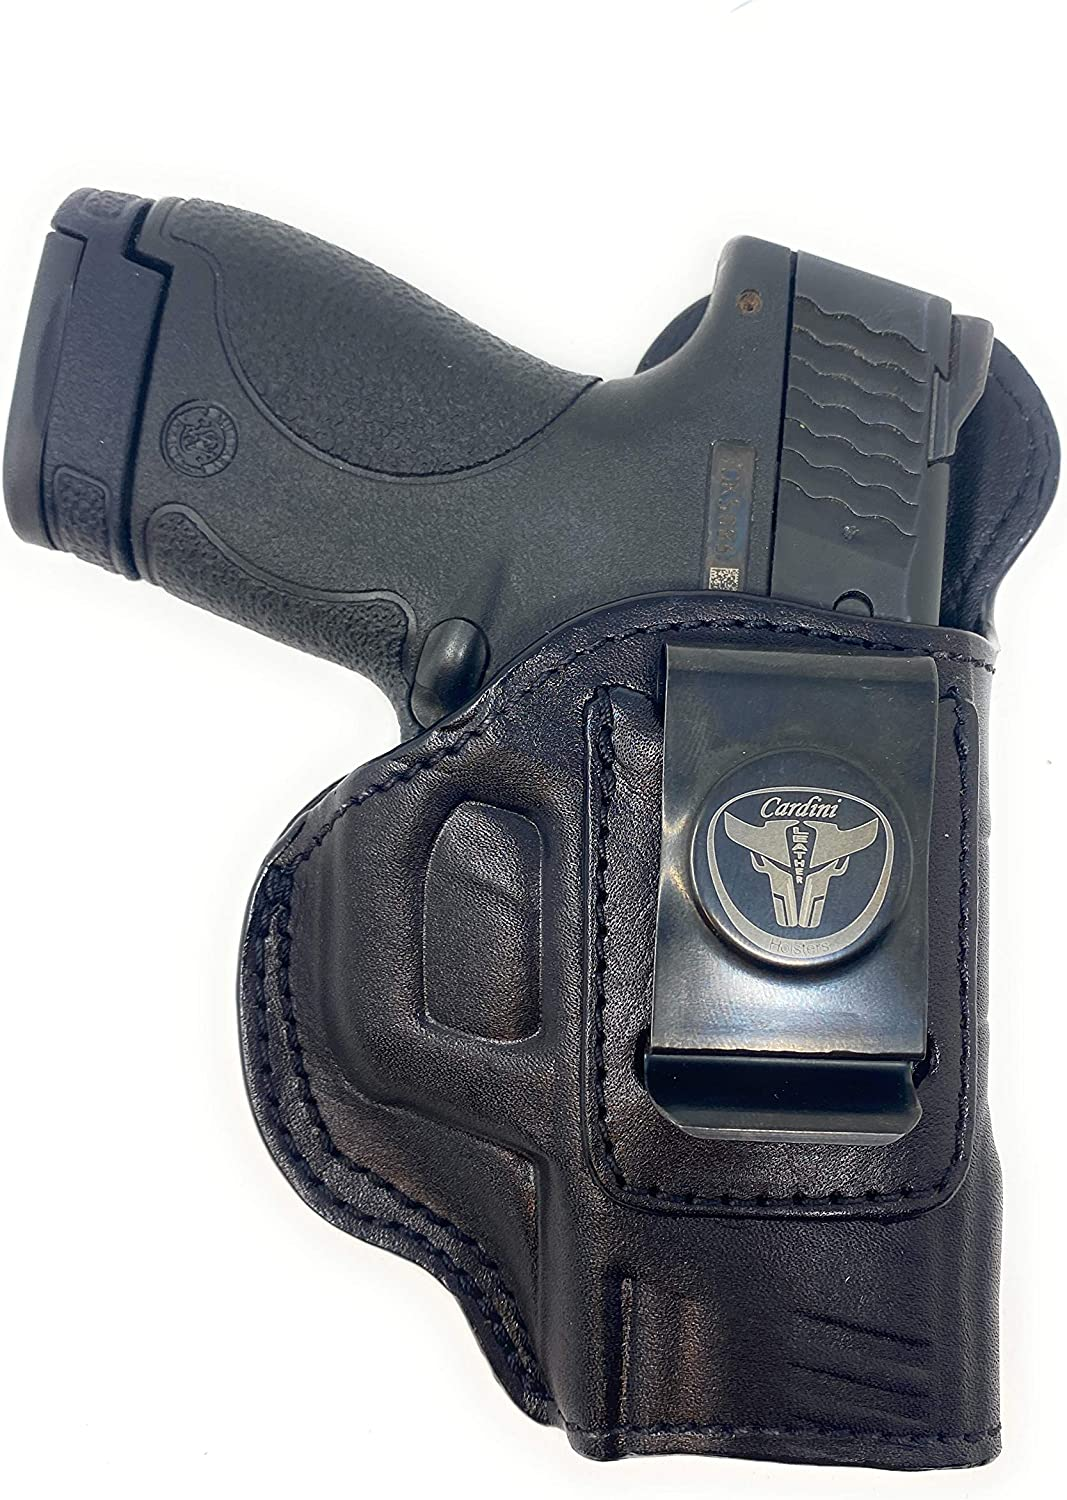 Cardini Leather USA-IWB Online limited product Ultra Ca Soft List price Holster- Concealed